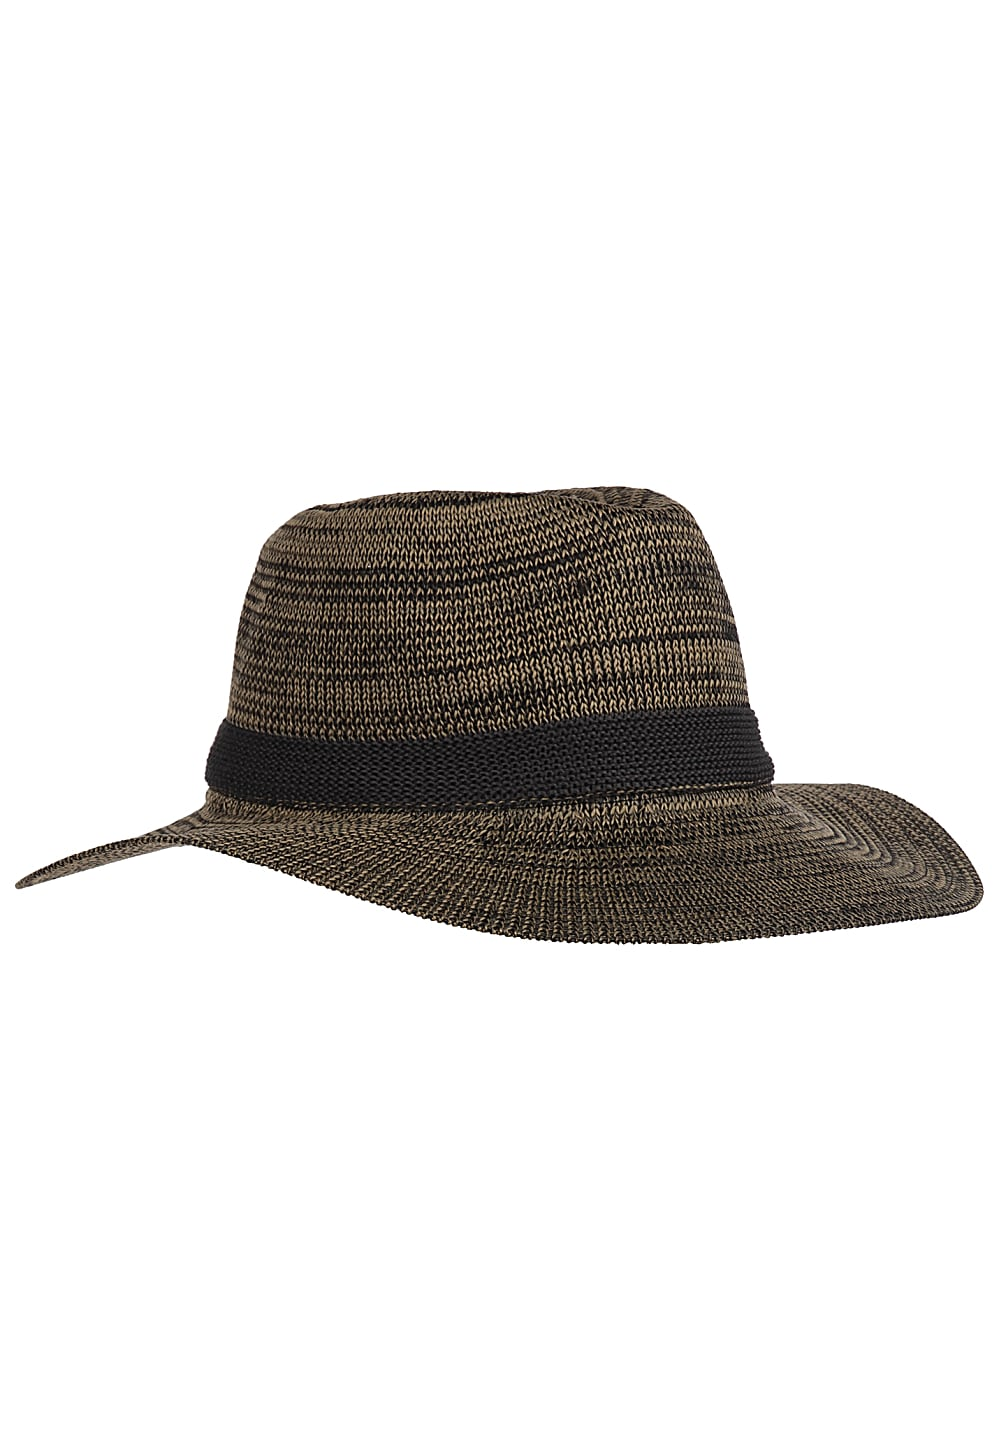 e12f0ad54 THE NORTH FACE Packable Panama - Hat for Women - Brown